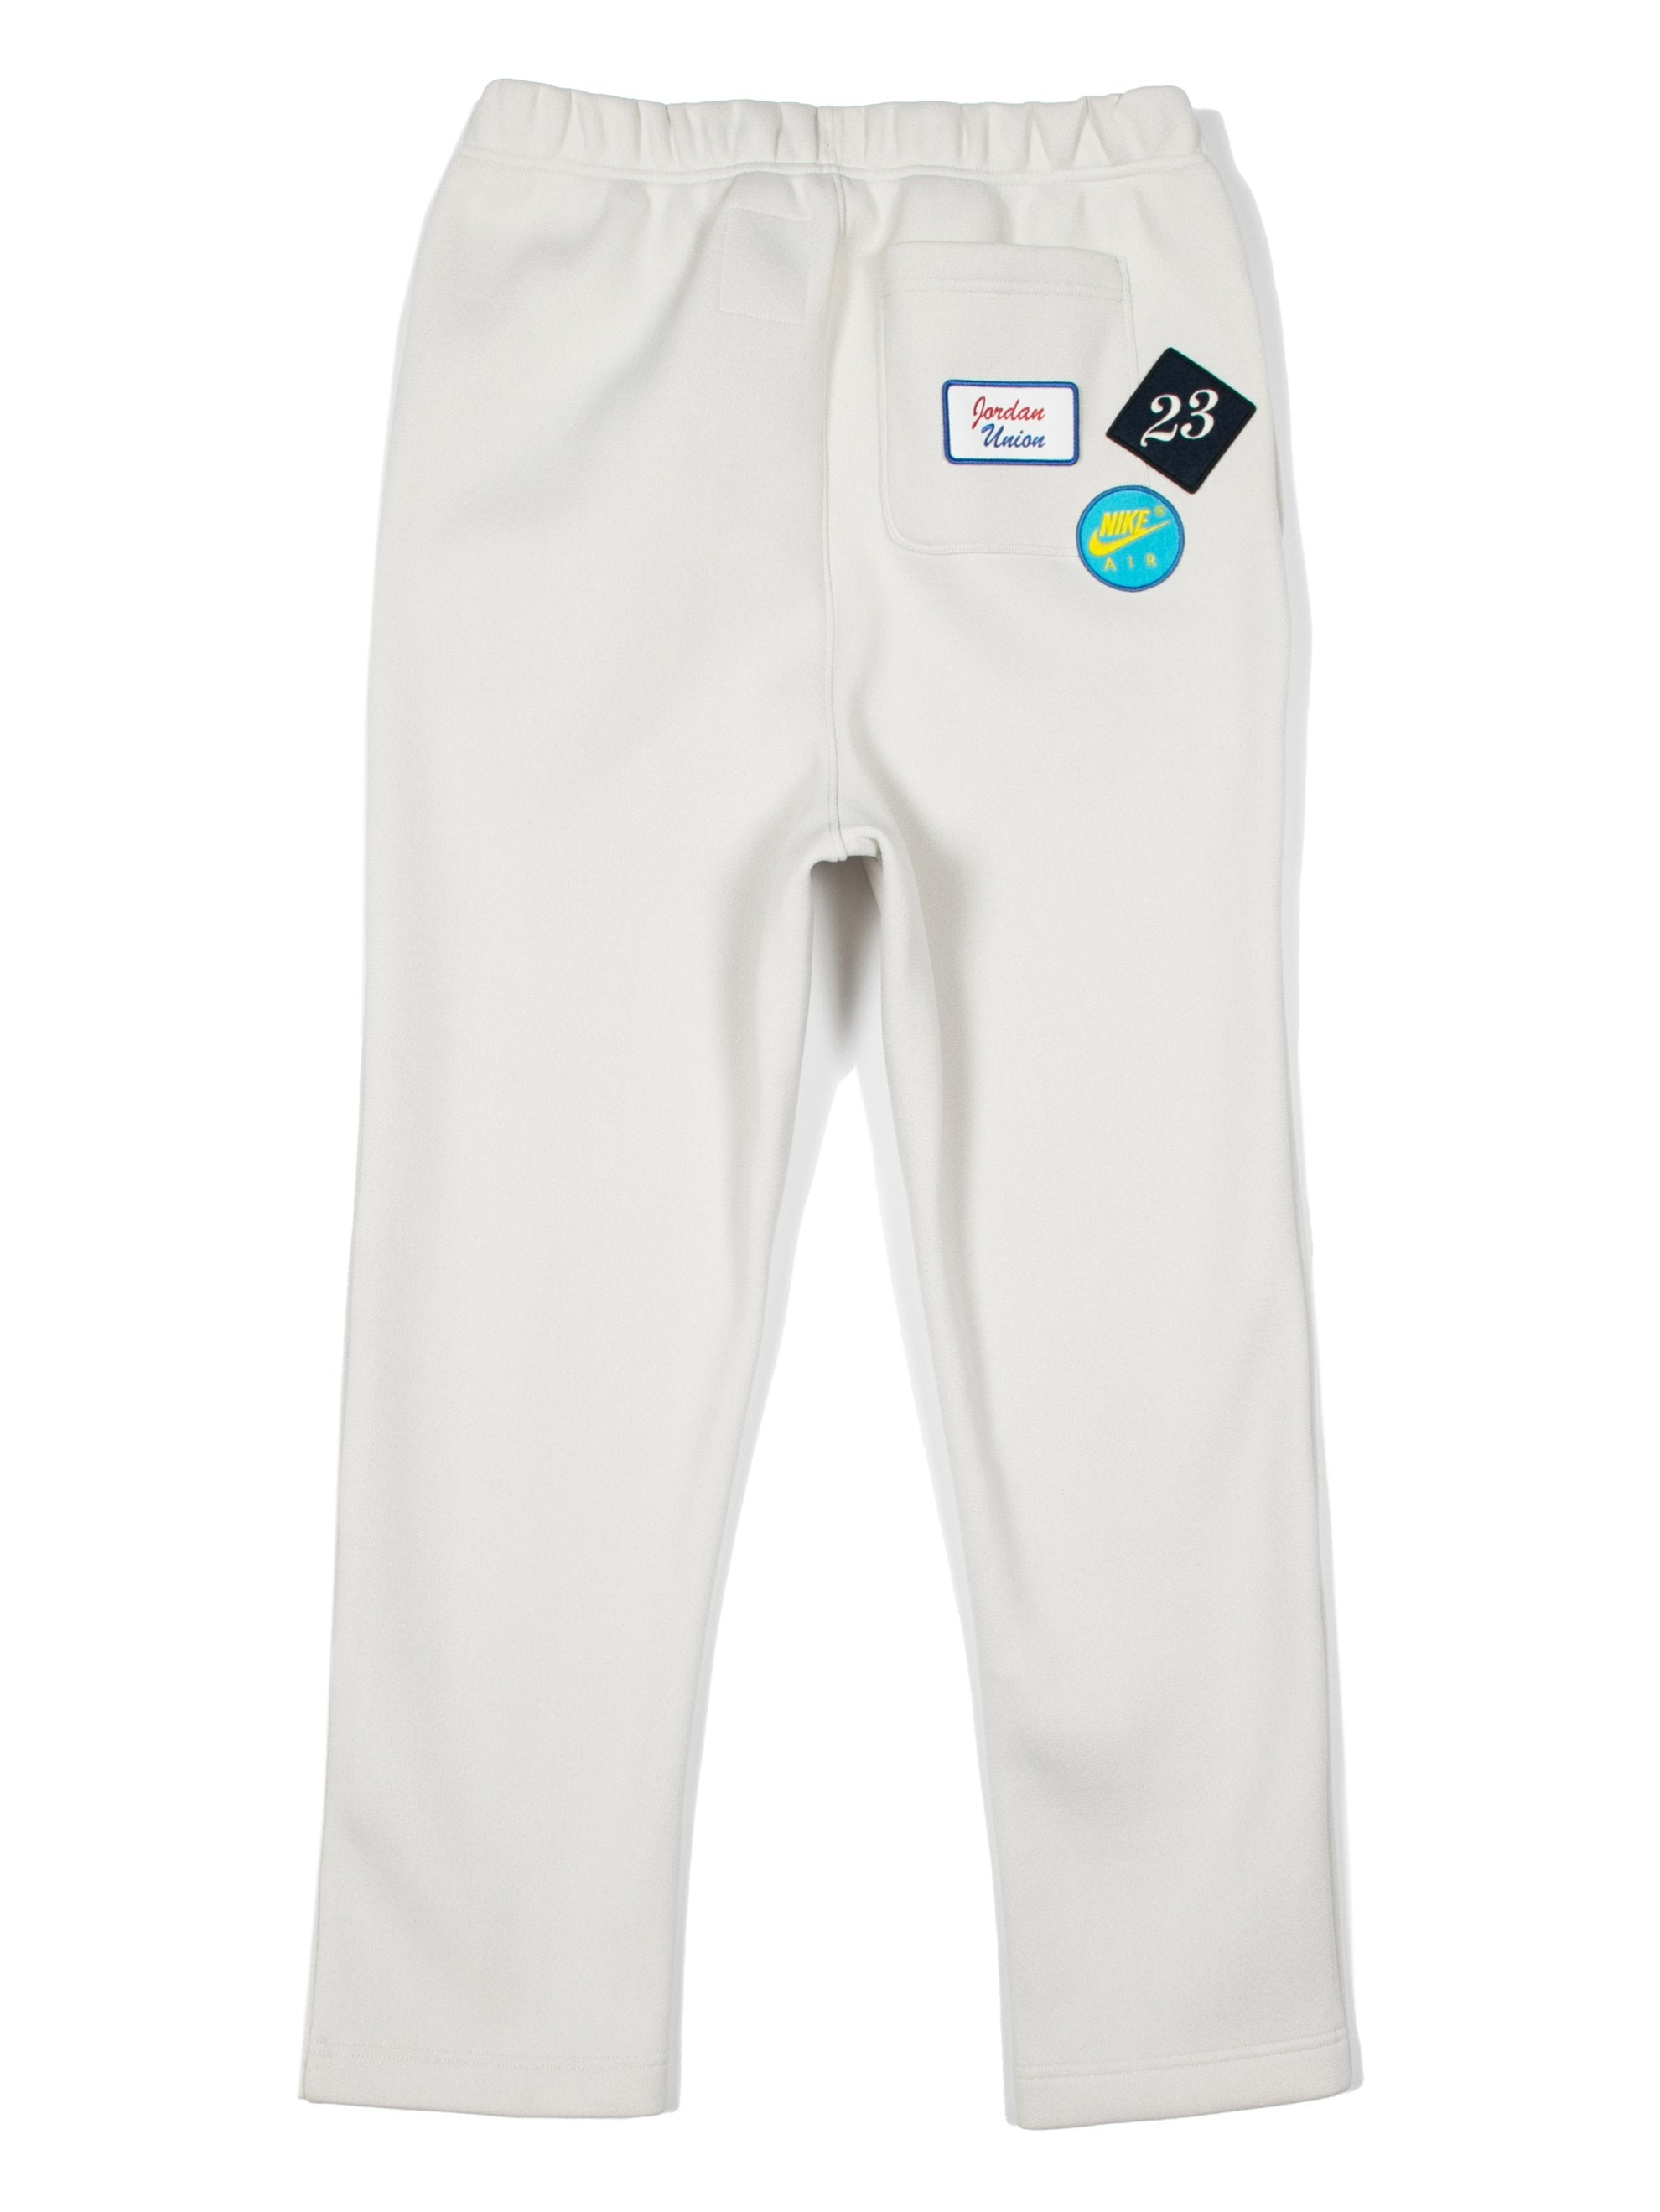 Bone Leisure Trouser 3